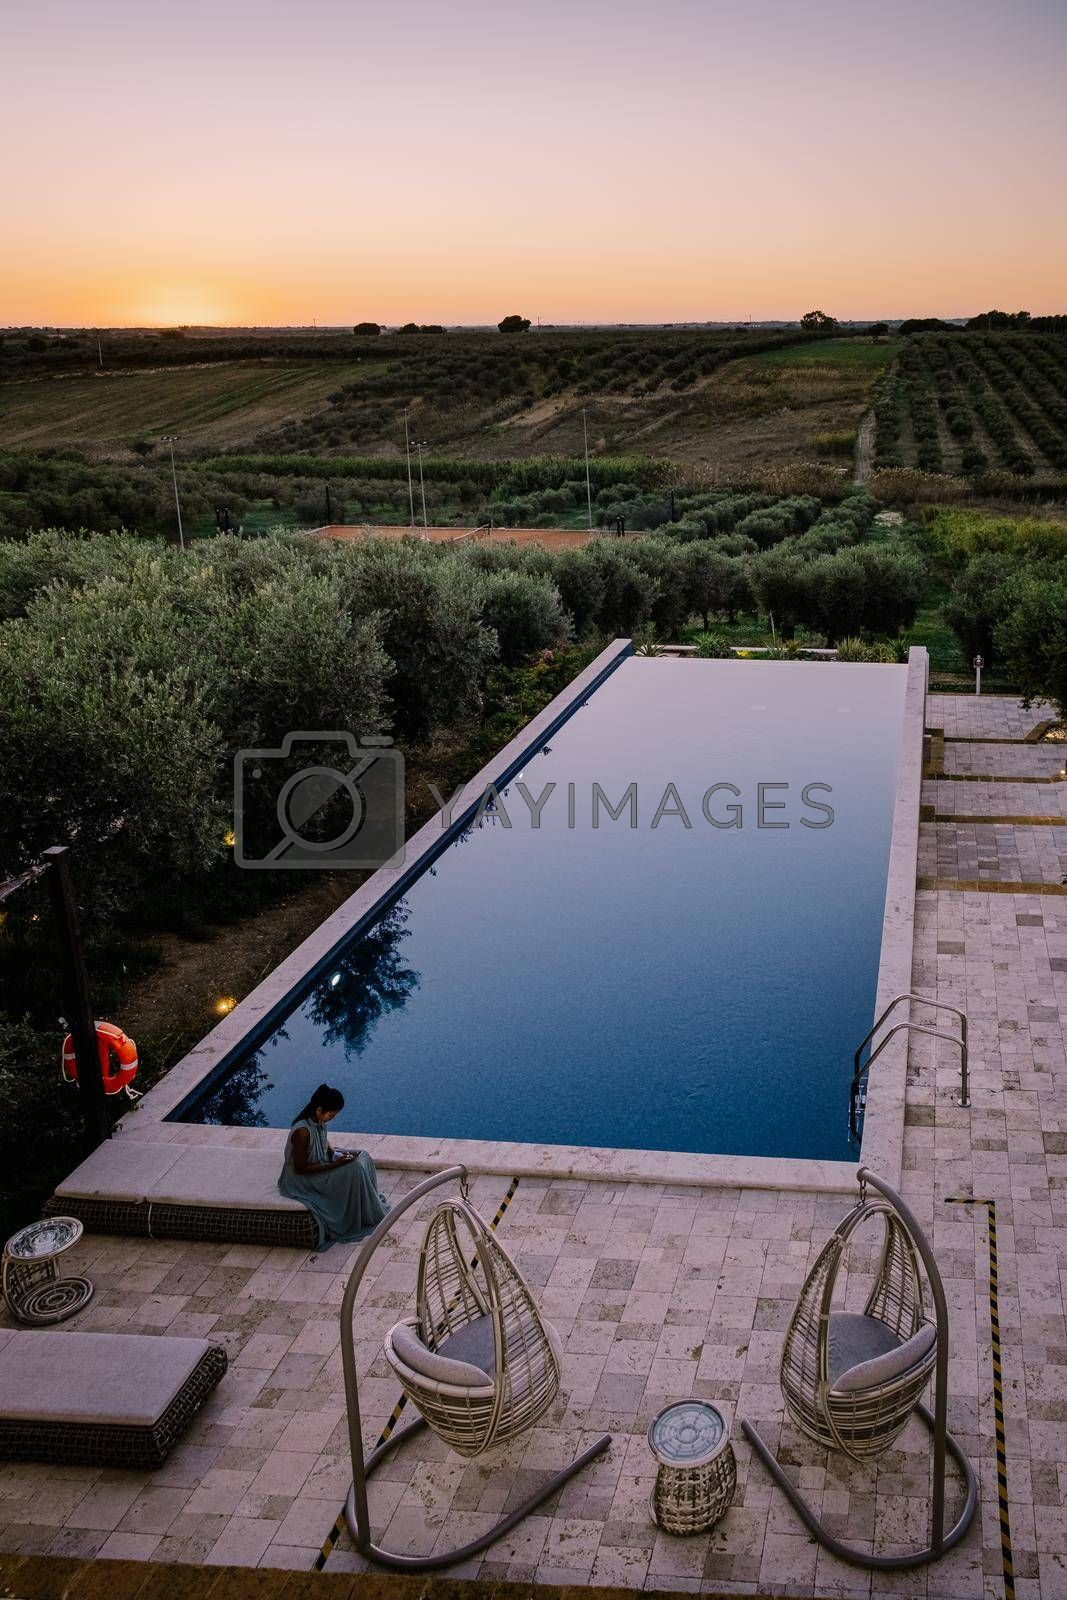 Luxury resort with a view over the wine field in Selinunte Sicily Italy. infinity pool with a view over wine fields in Sicilia, woman on vacation luxury resort